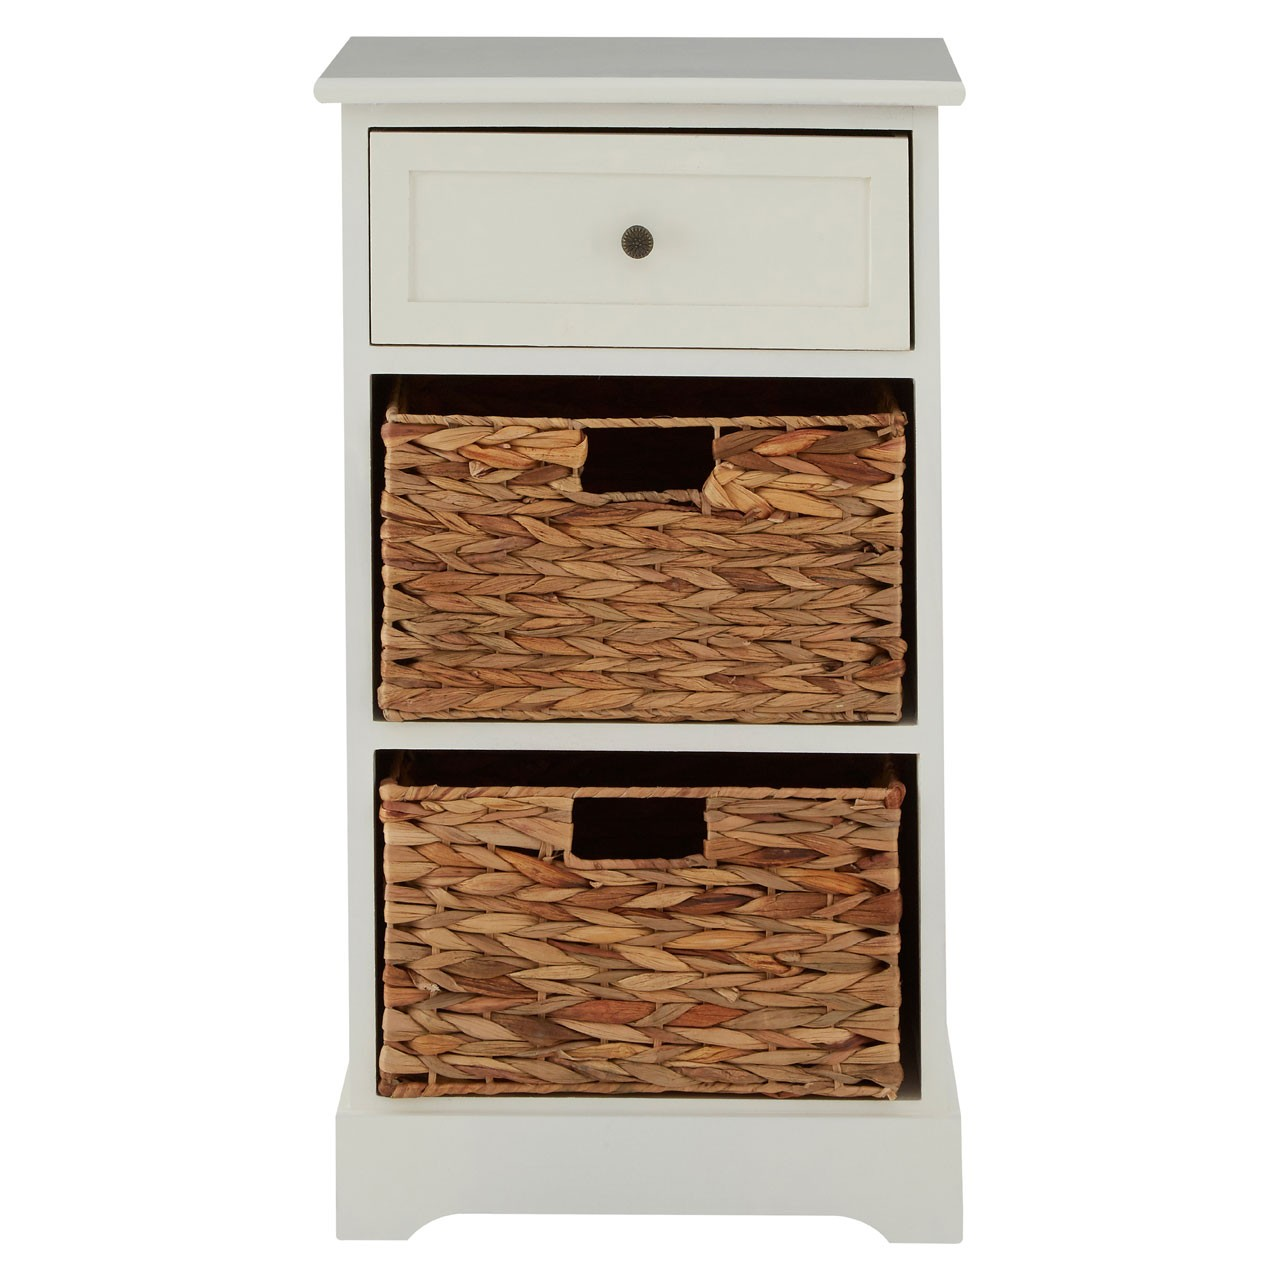 Vermont 1 Drawer and 2 Baskets Cabinet - Ivory